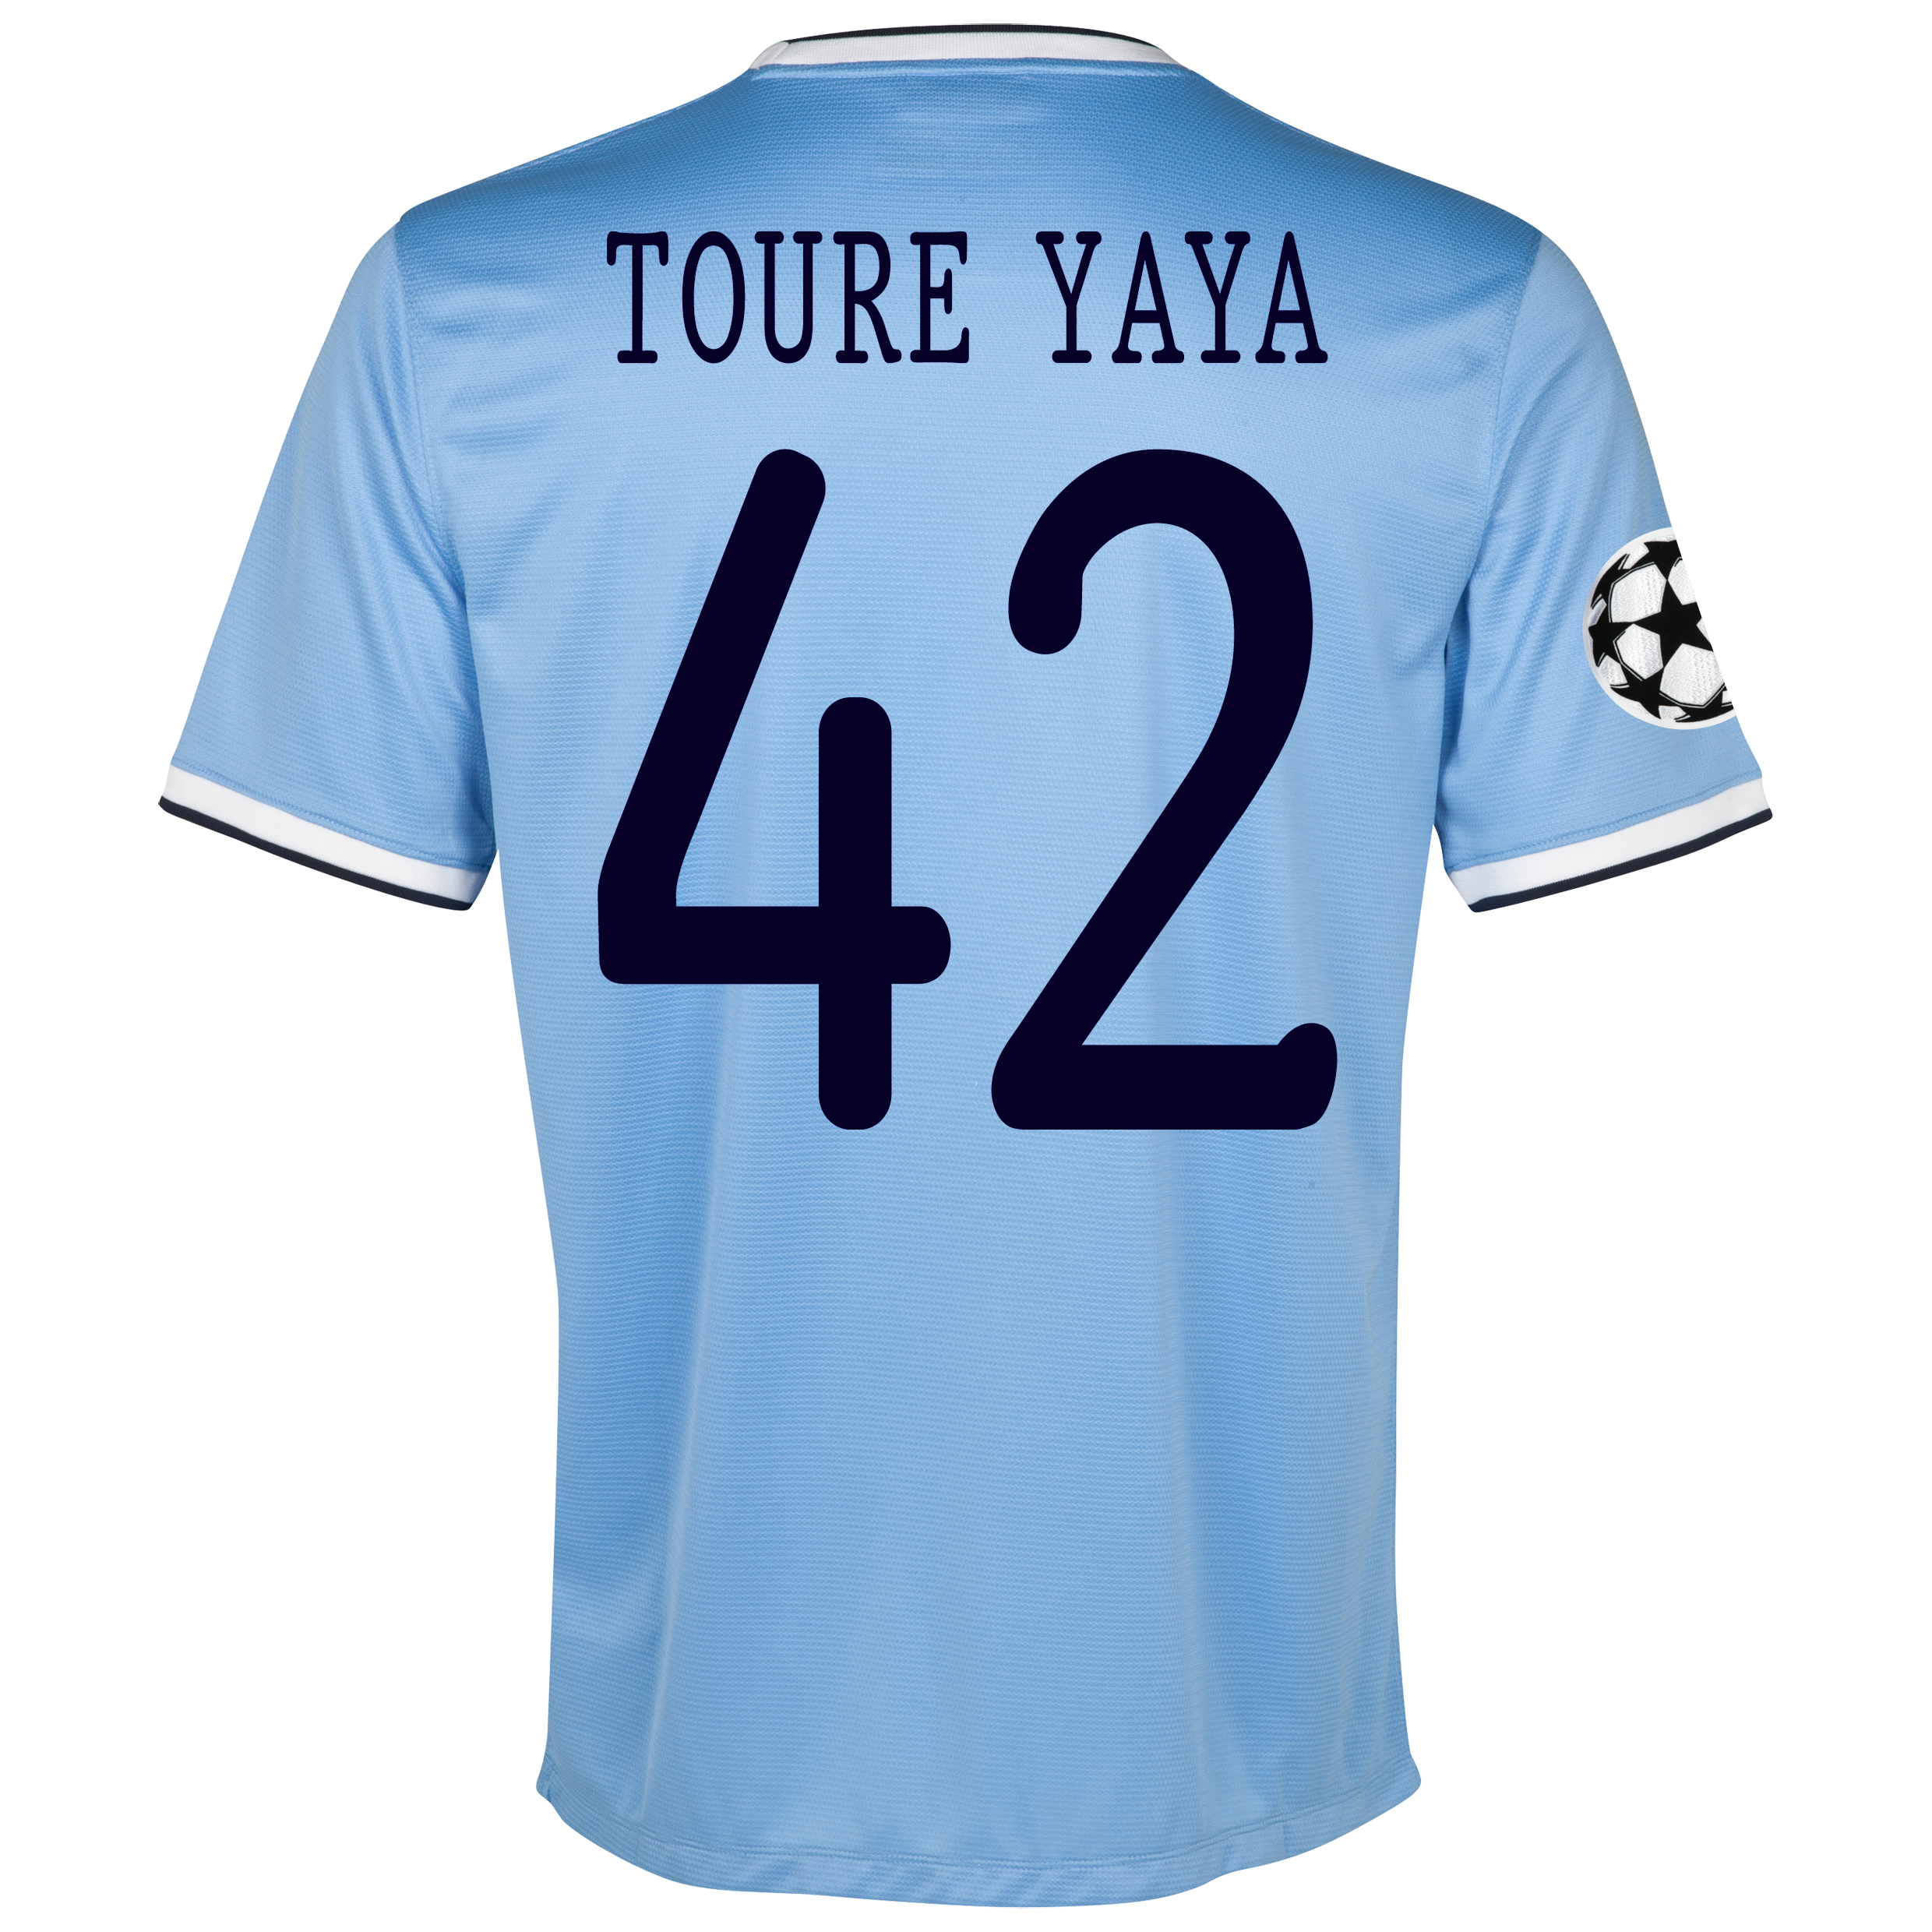 Manchester City UEFA Champions League Home Shirt 2013/14 - Junior with Toure Yaya 42 printing